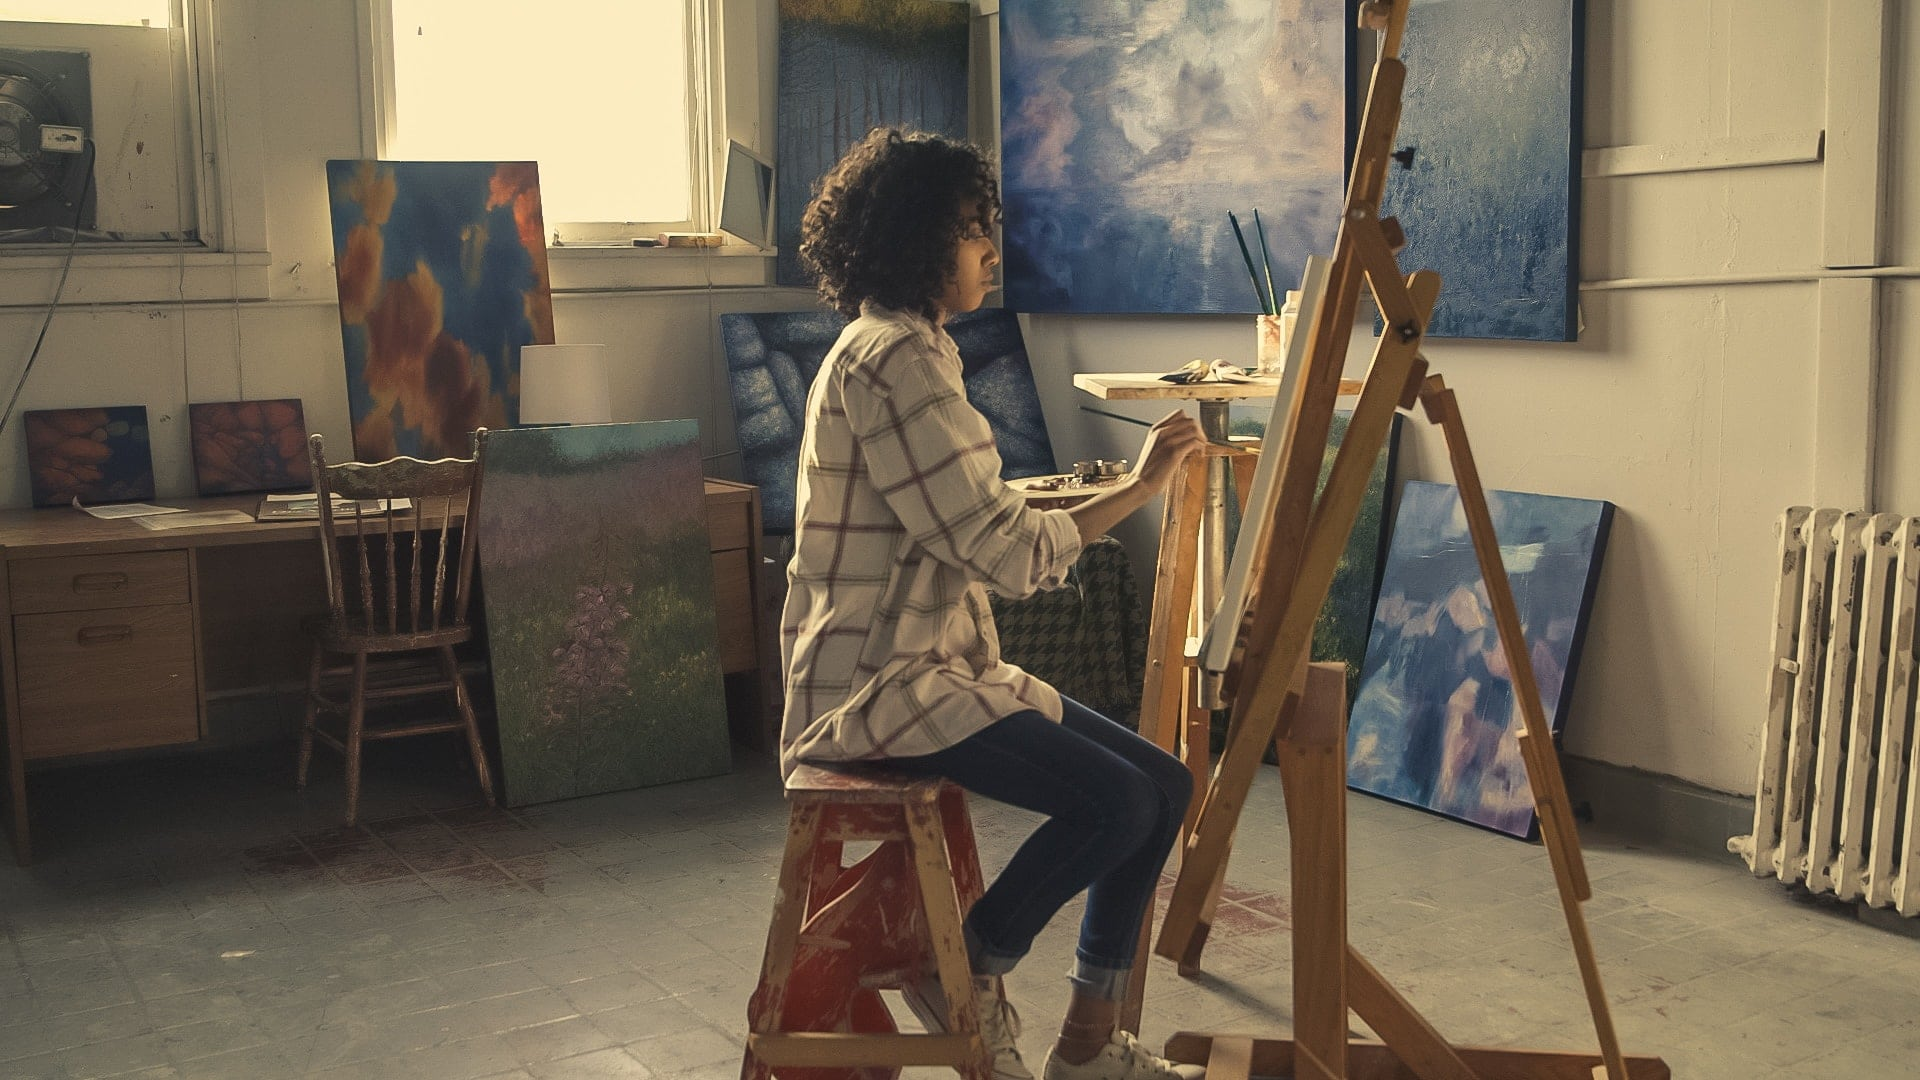 Woman painting at an easel